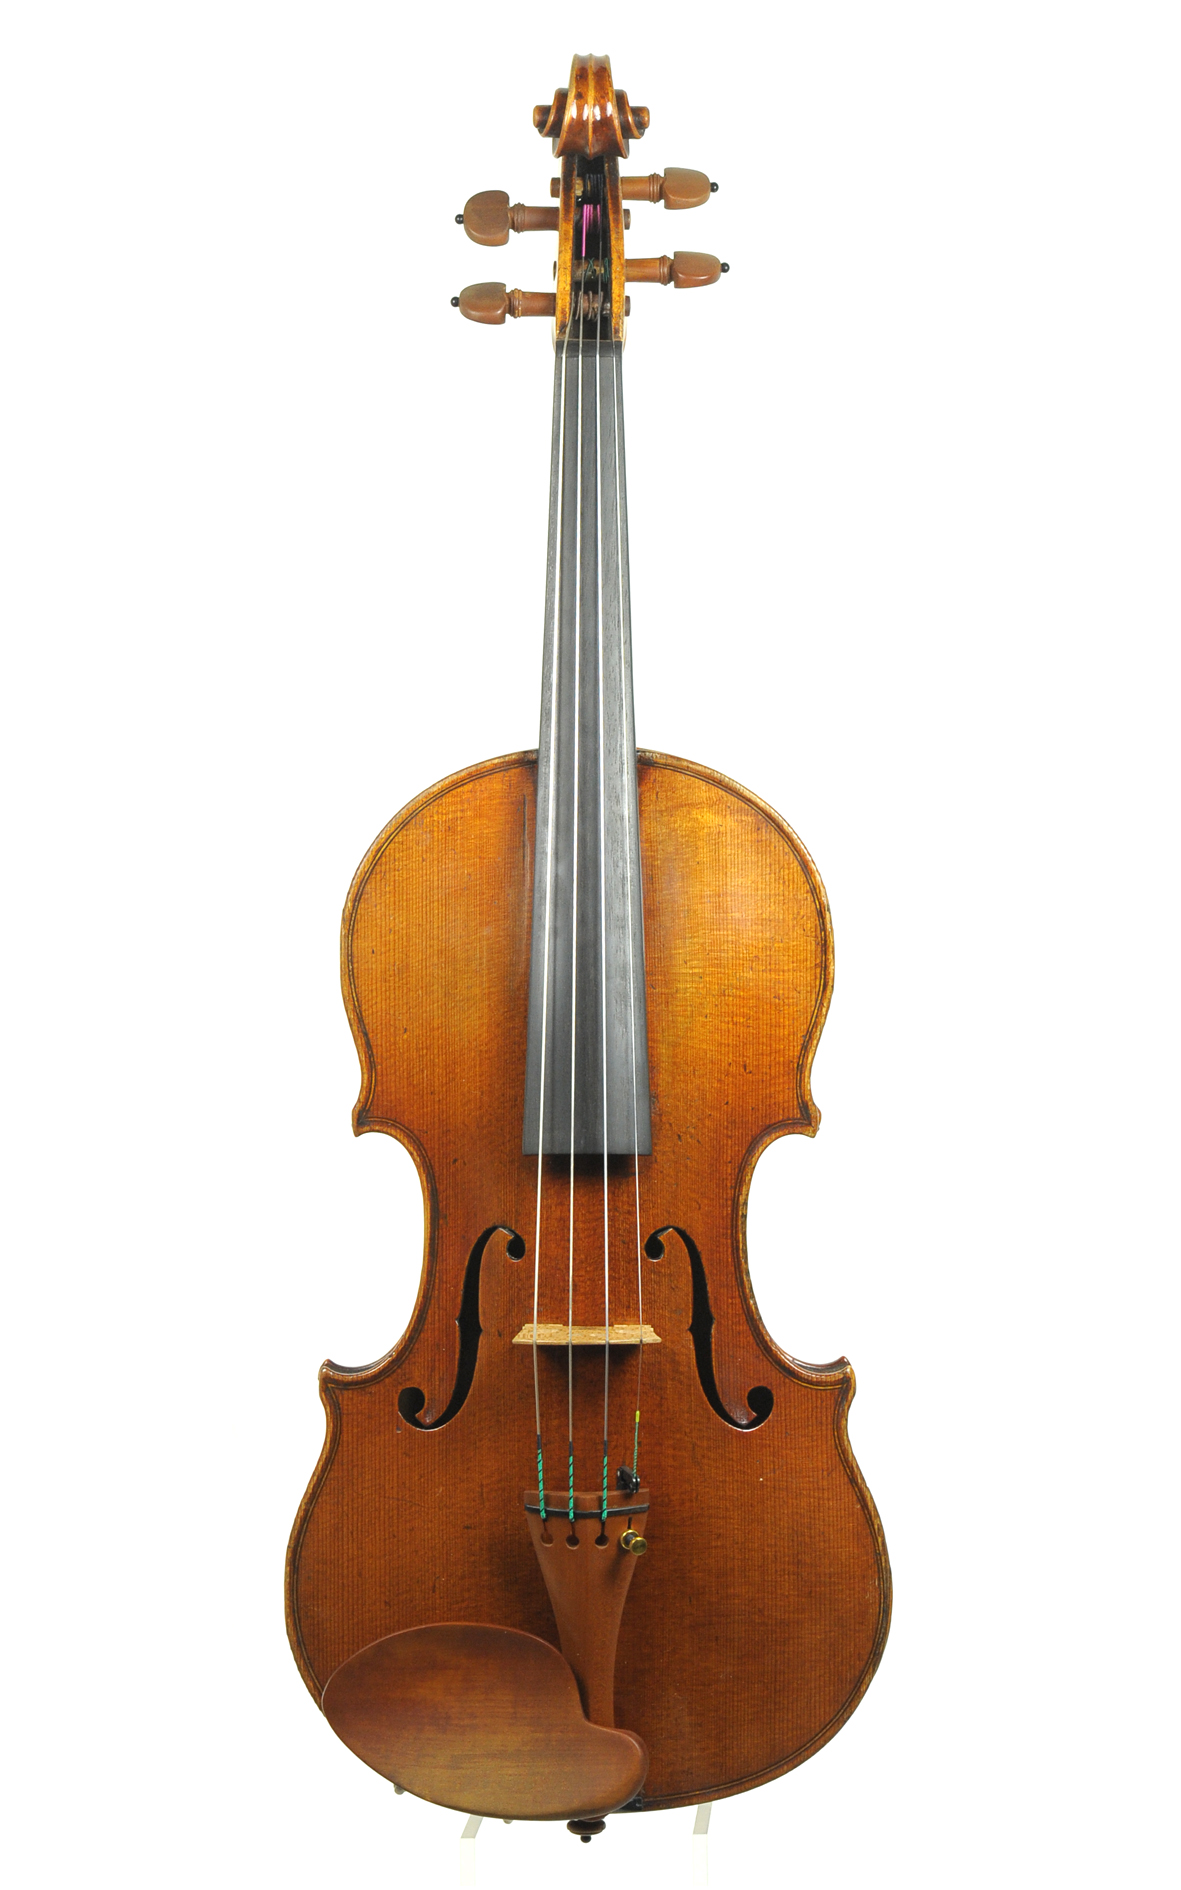 Violin by Ernst Heinrich Roth, made in Markneukirchen